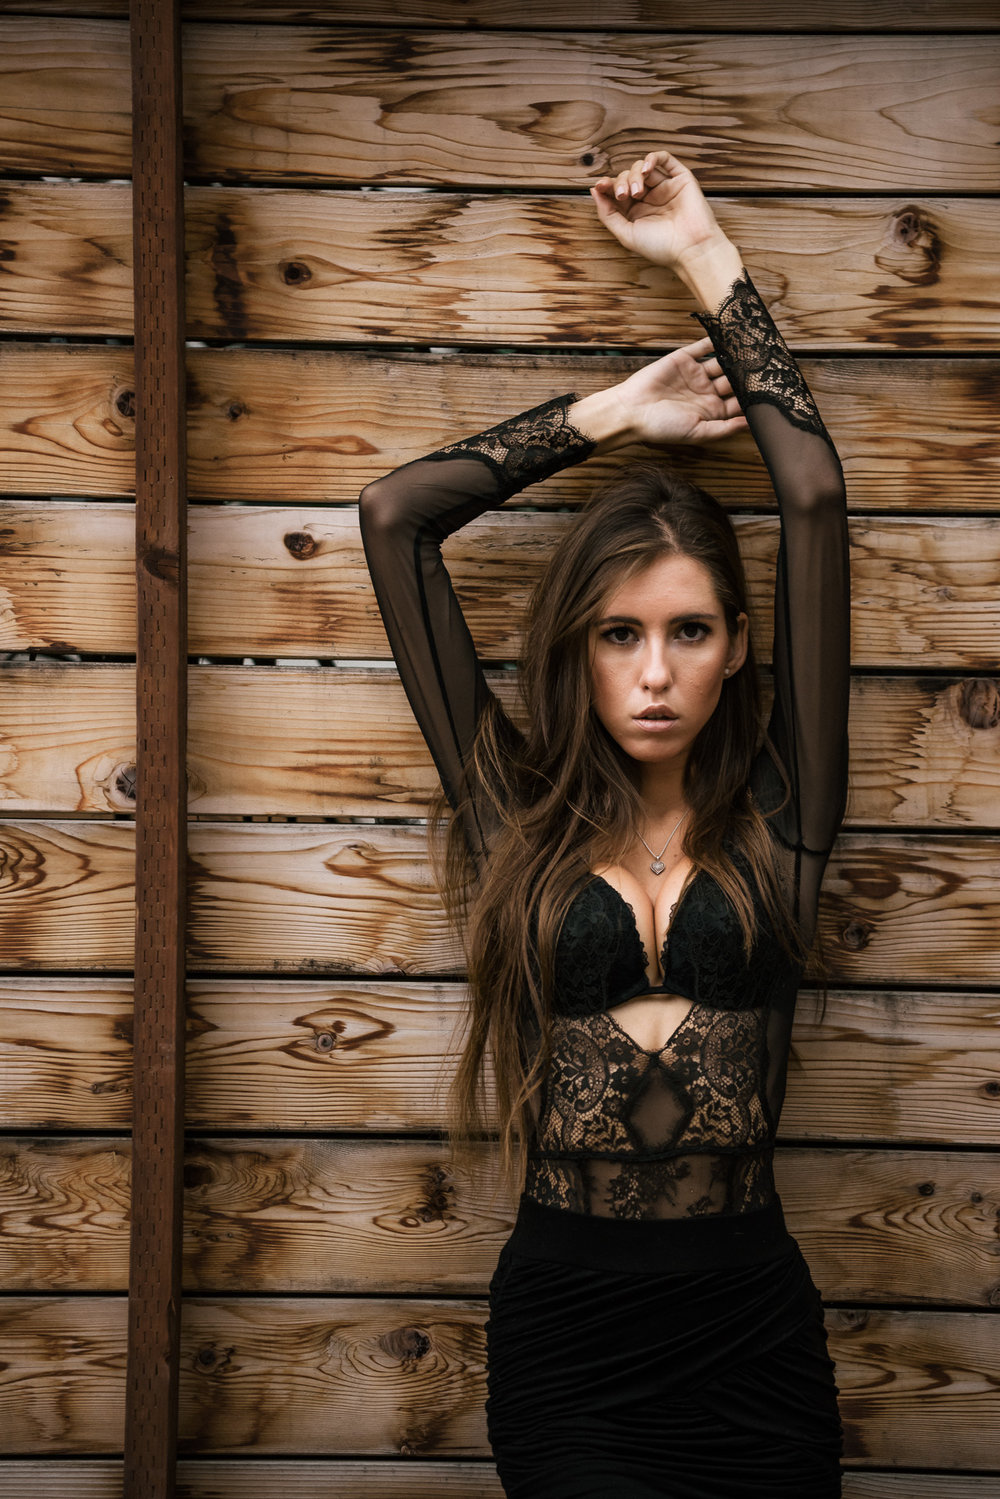 Model poses against a wooden wall for urban style shoot at The Hungarion Brunette Lingerie as outerwear fashion photoshoot in Venice Beach California